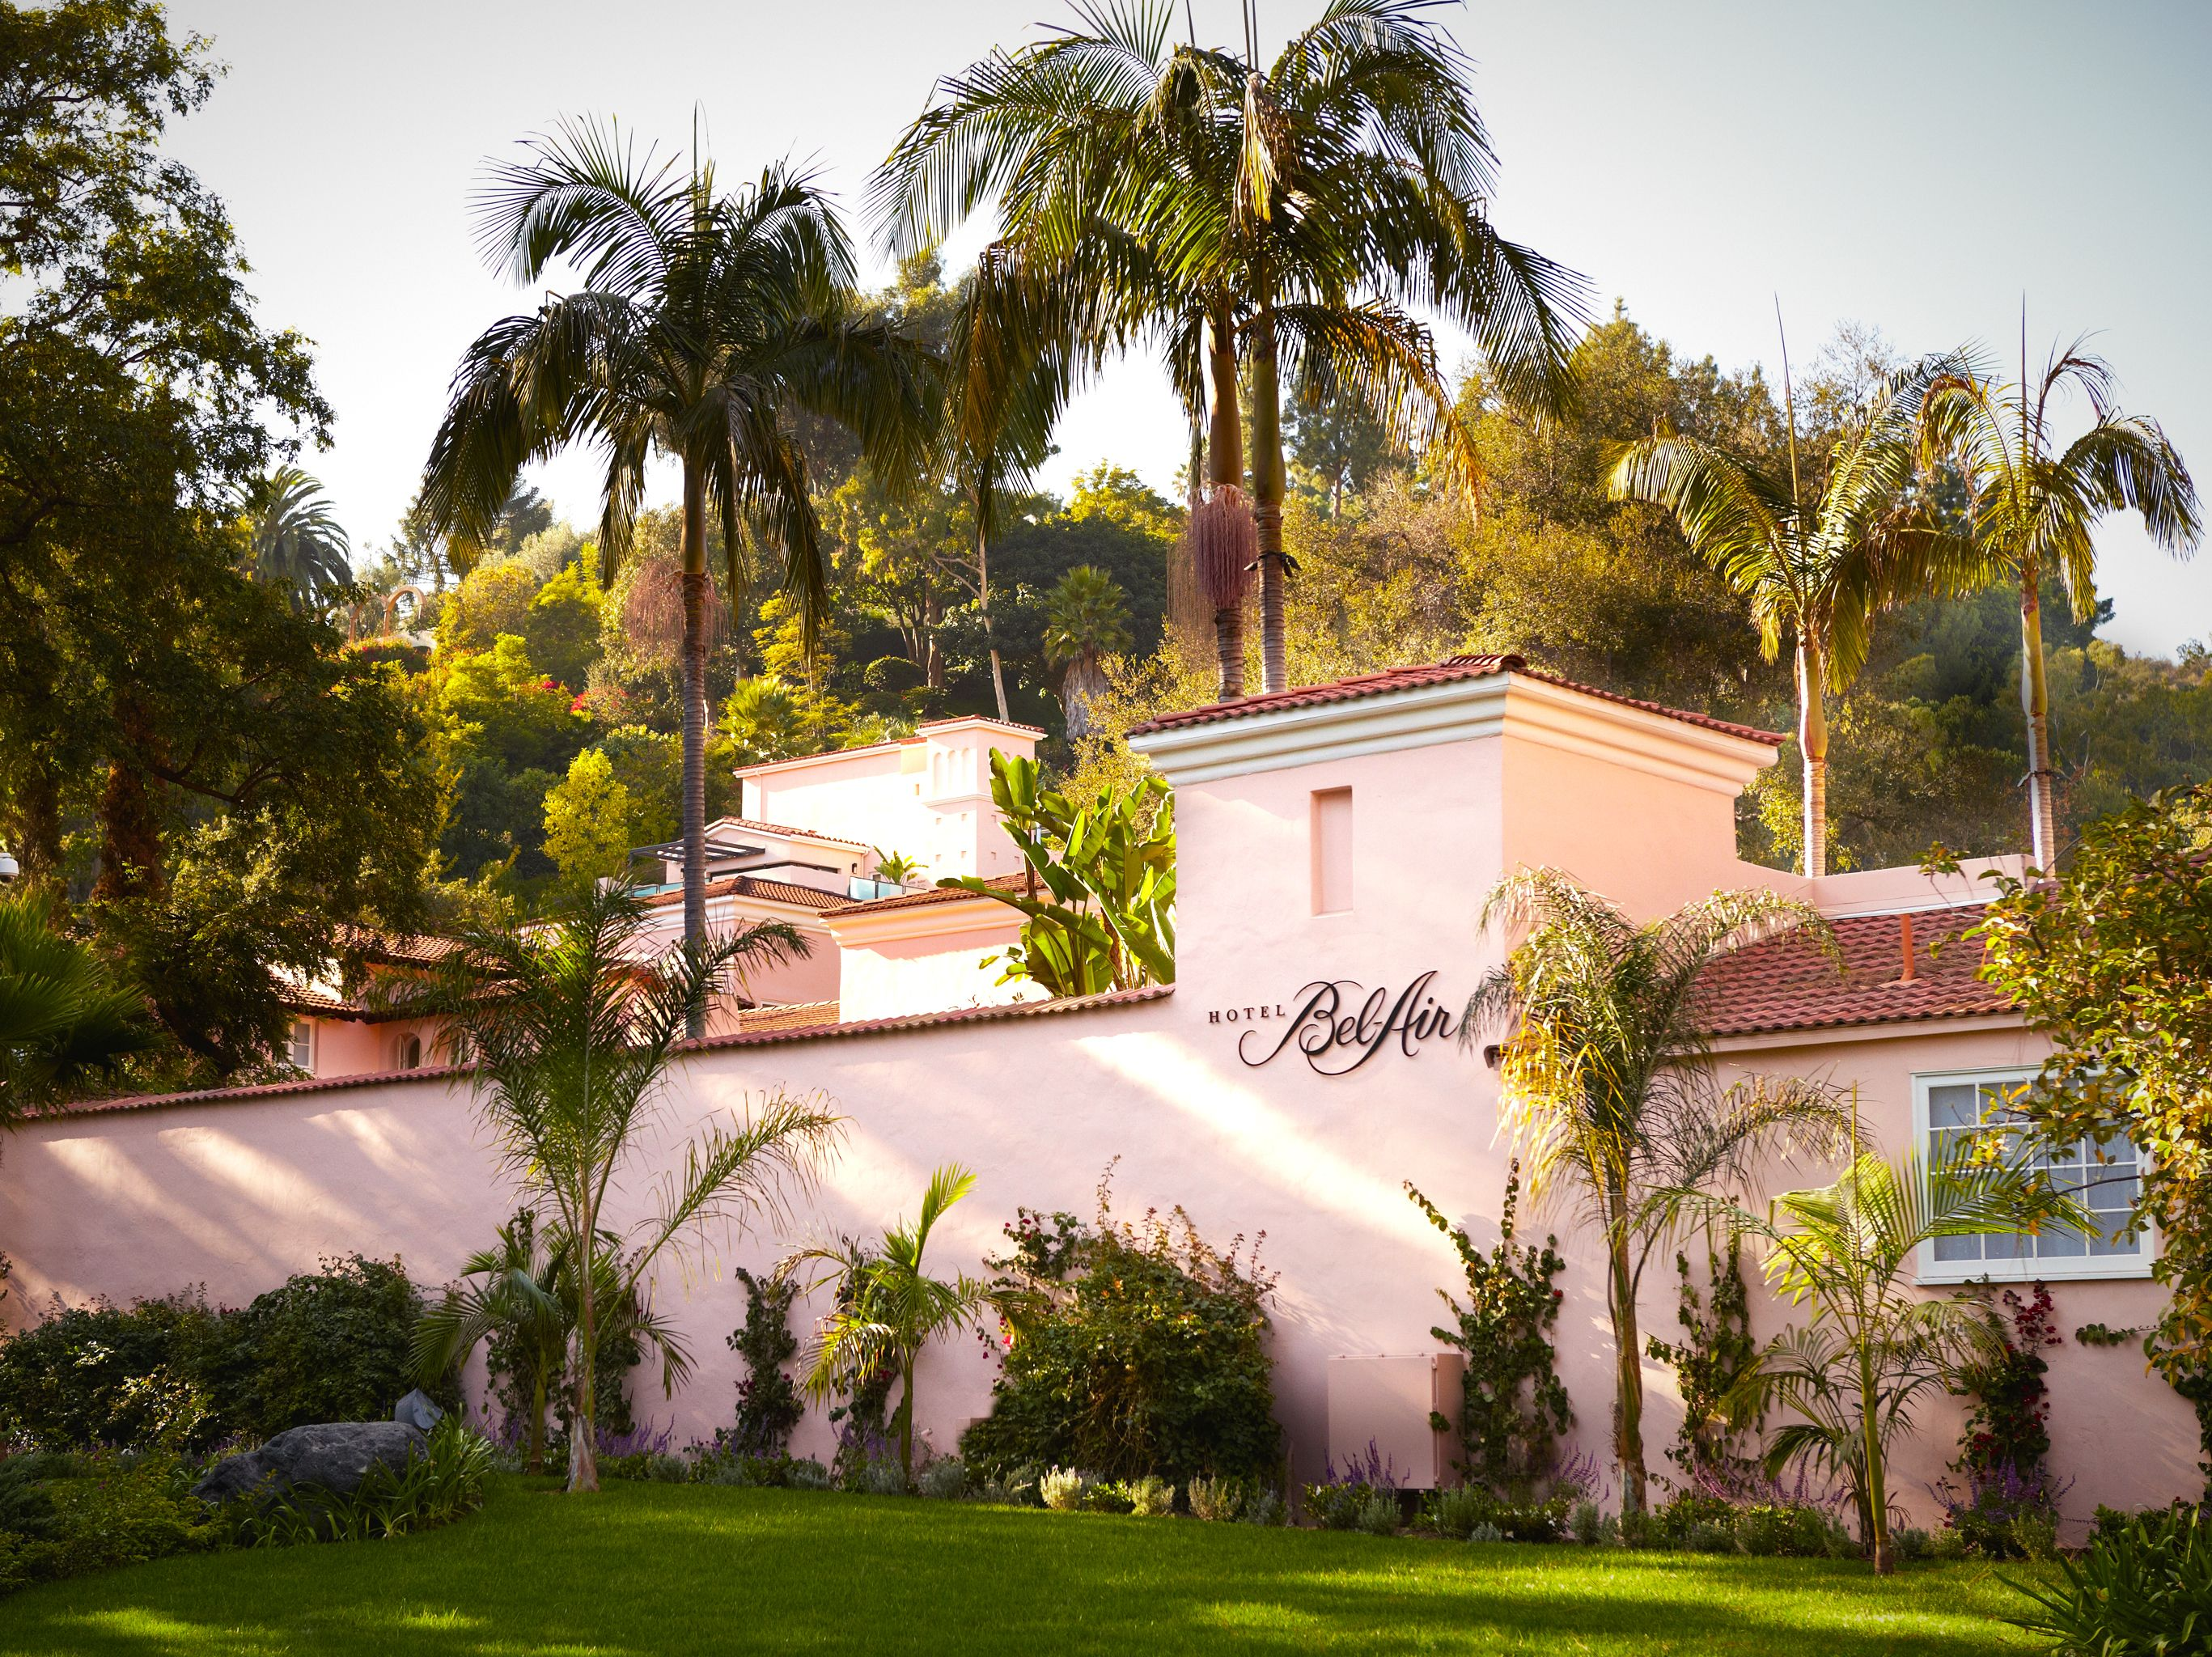 Check los angeles and area hotel belair beverly hills boutique hotel book now with magellan luxury hotels at unadvertised low rates by phone only